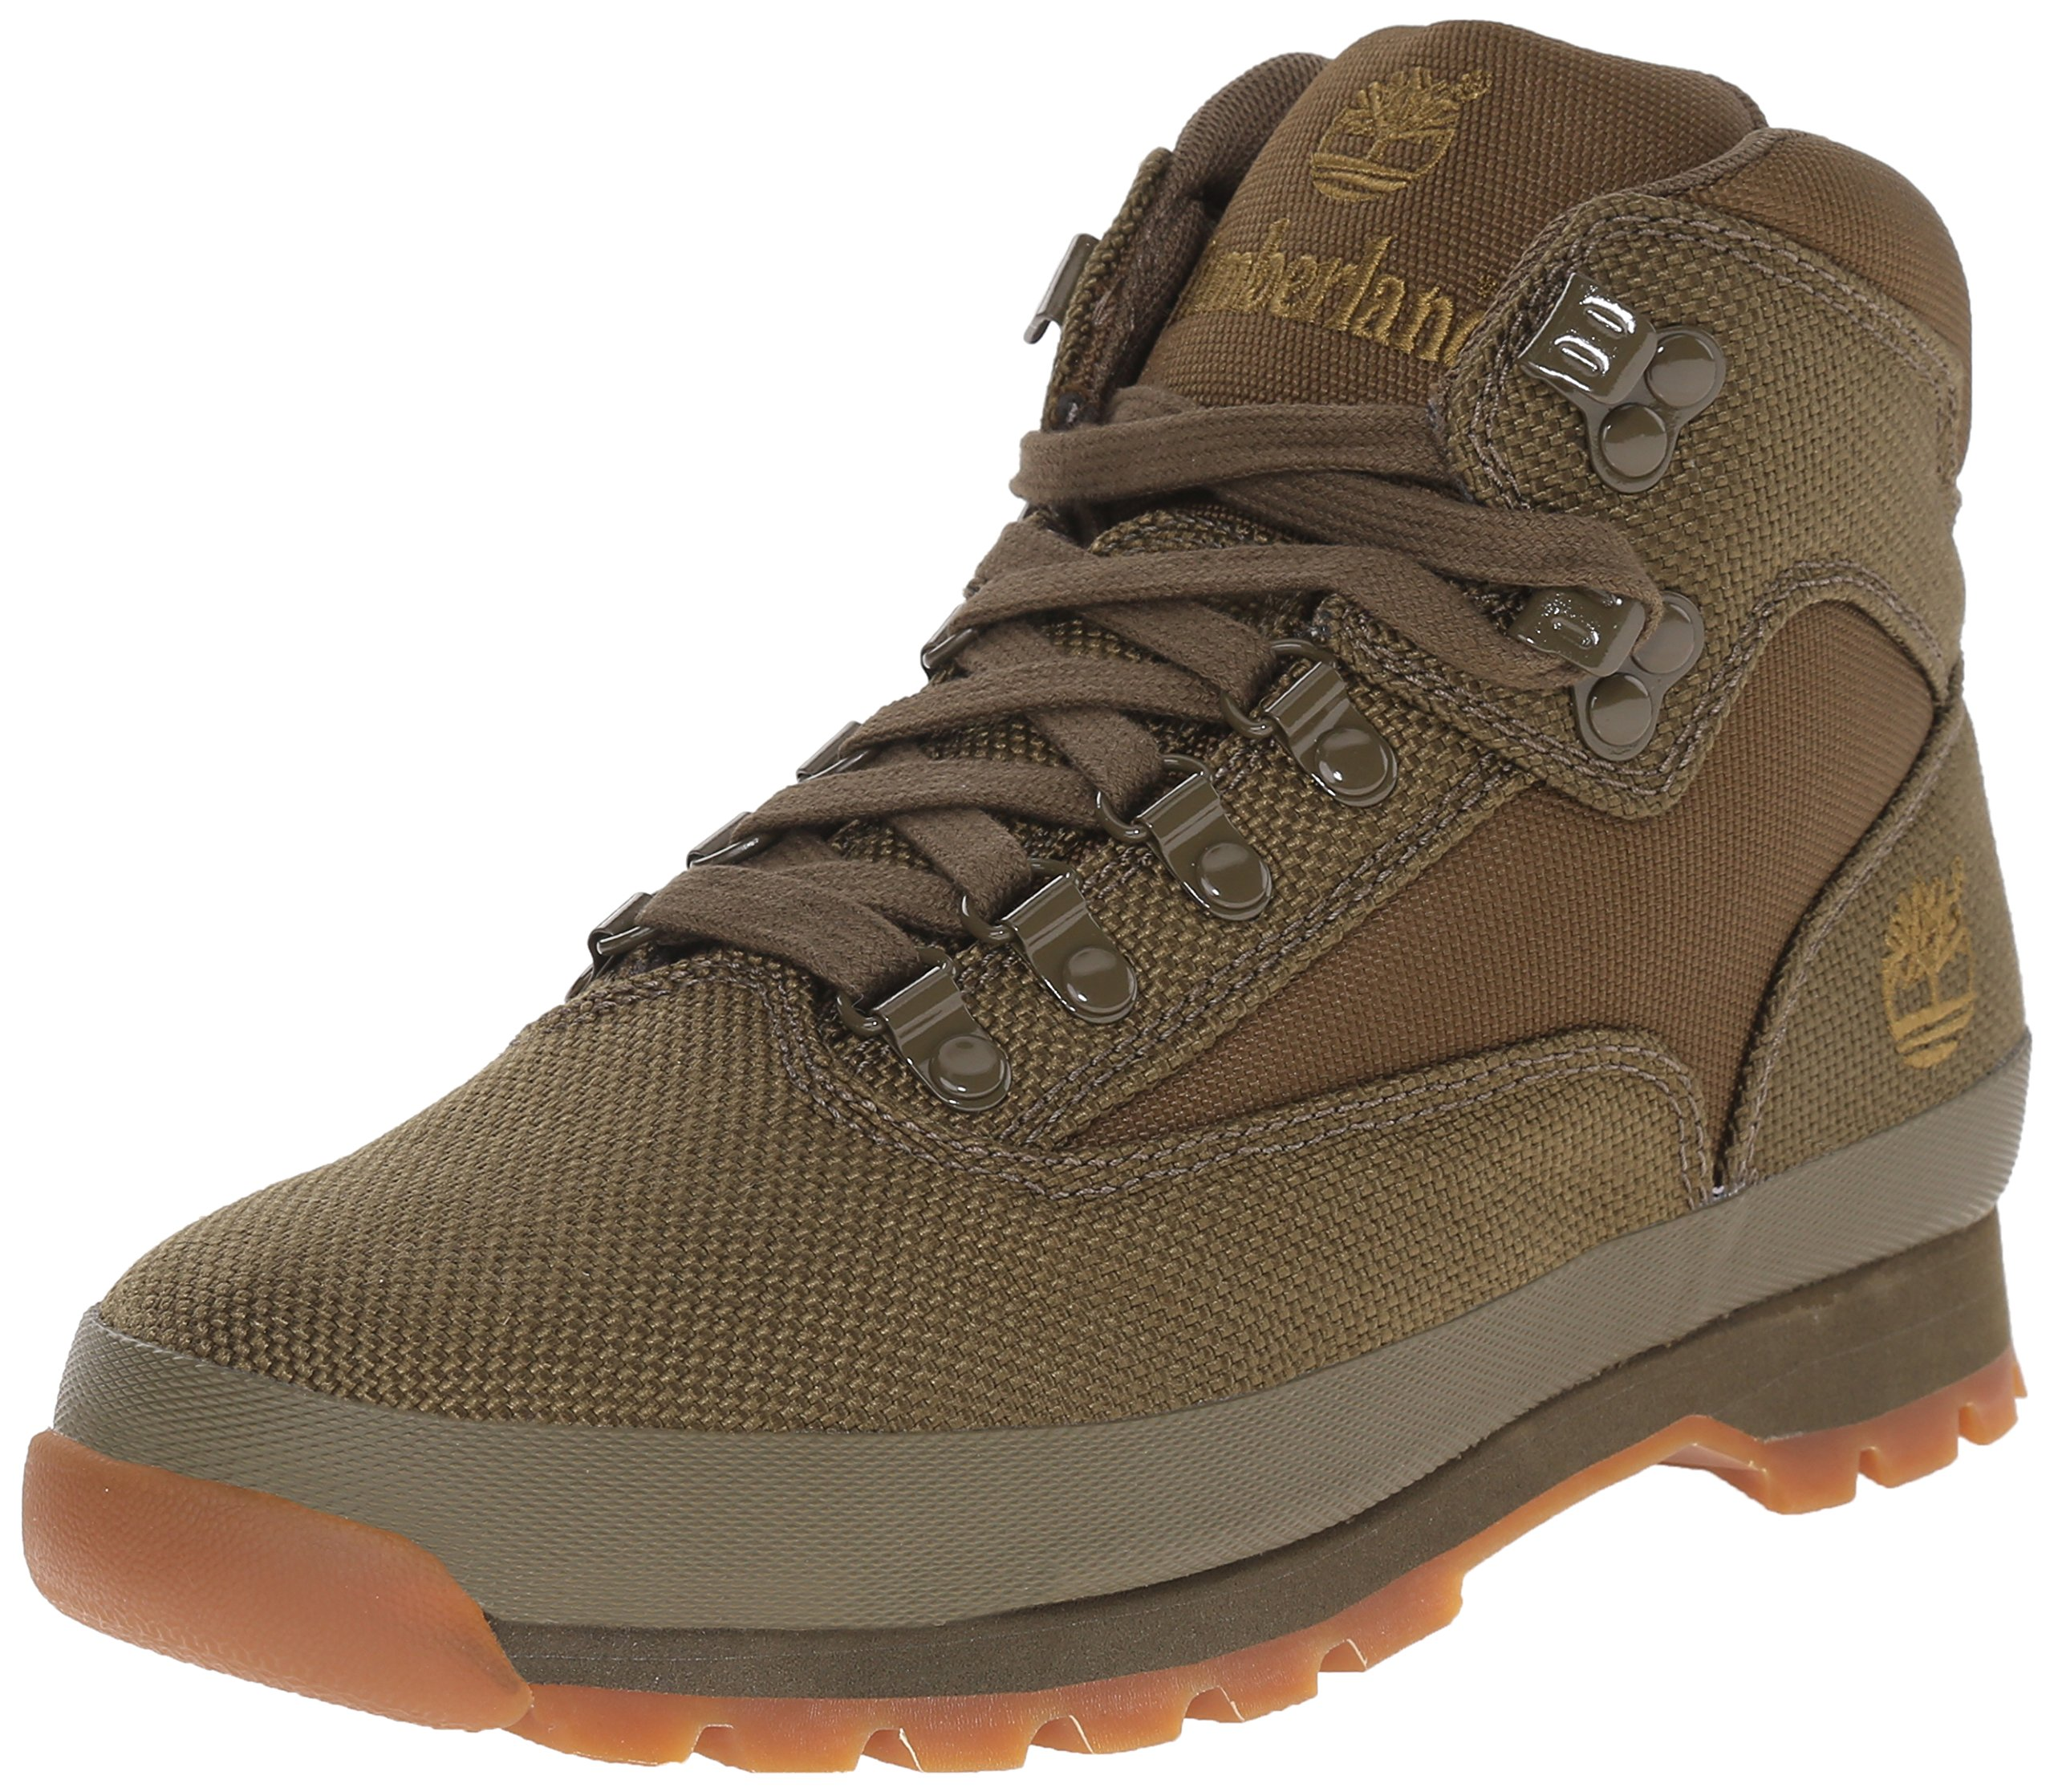 Timberland Men's Euro Hiker Mid Fabric Fashion Sneaker, Olive, 8.5 M US